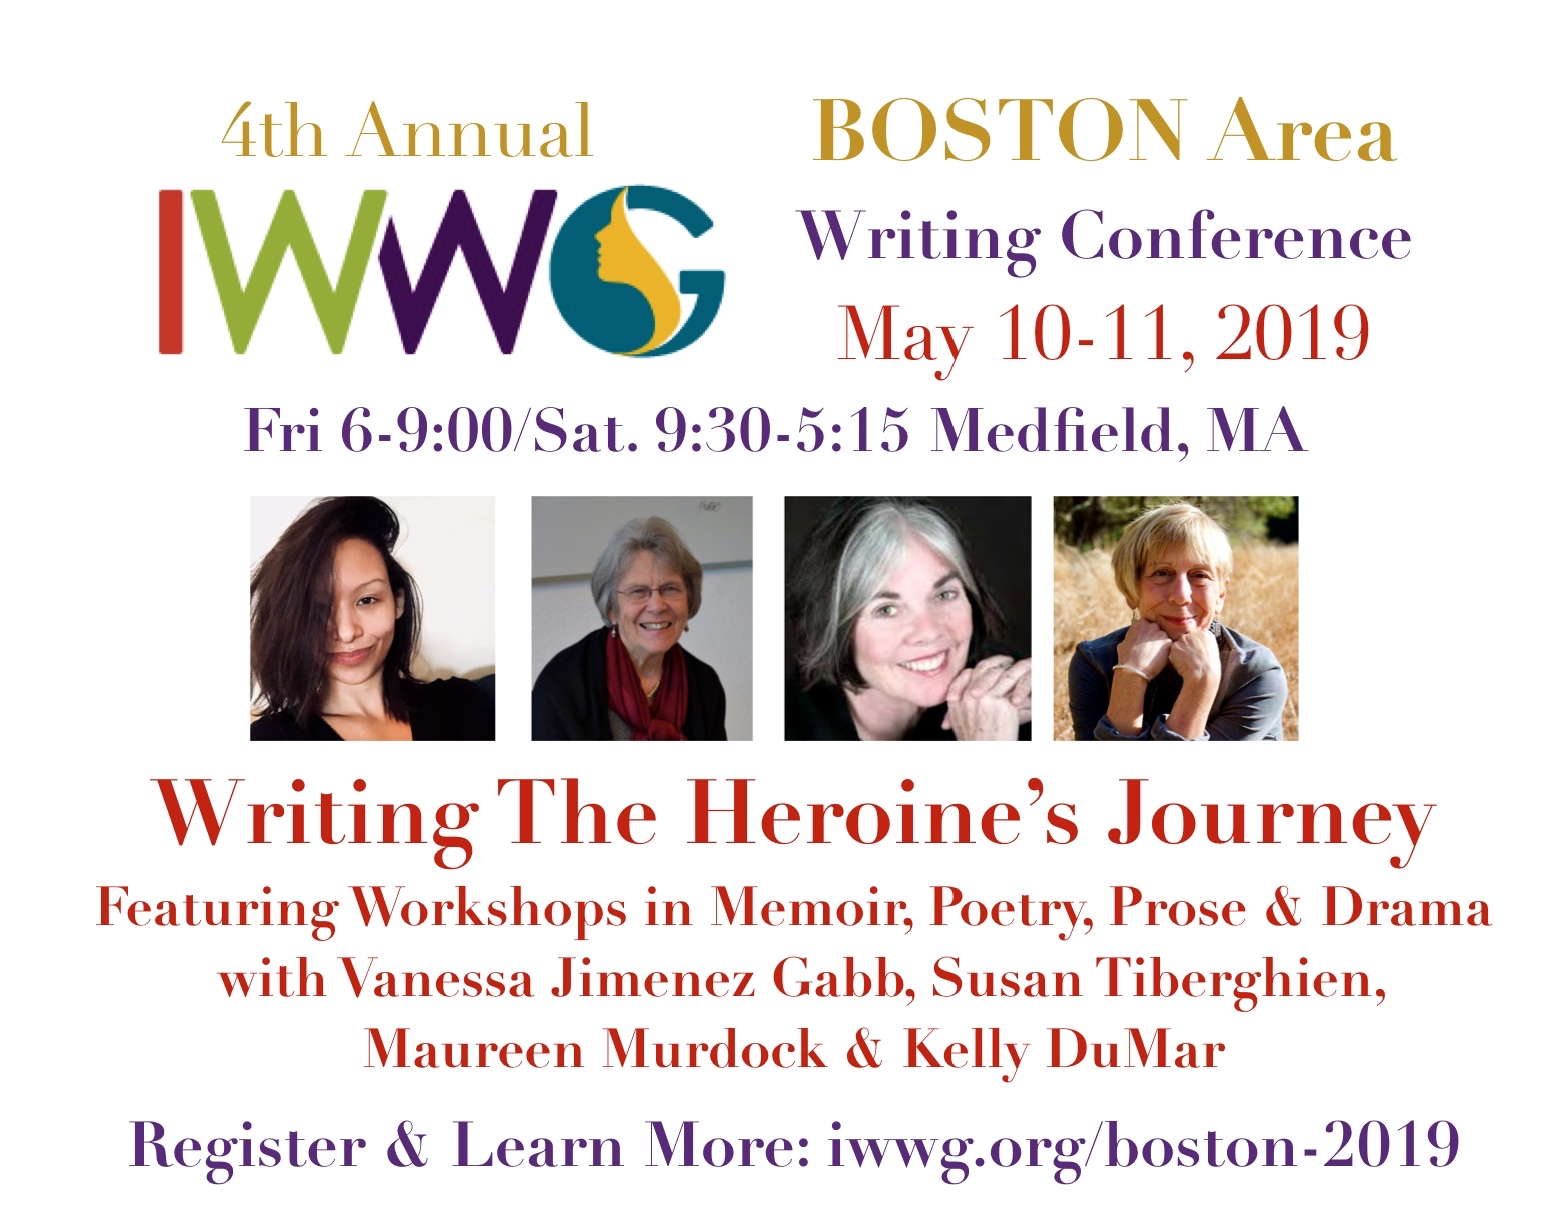 IWWG Writing Conference May 10-11, 2019